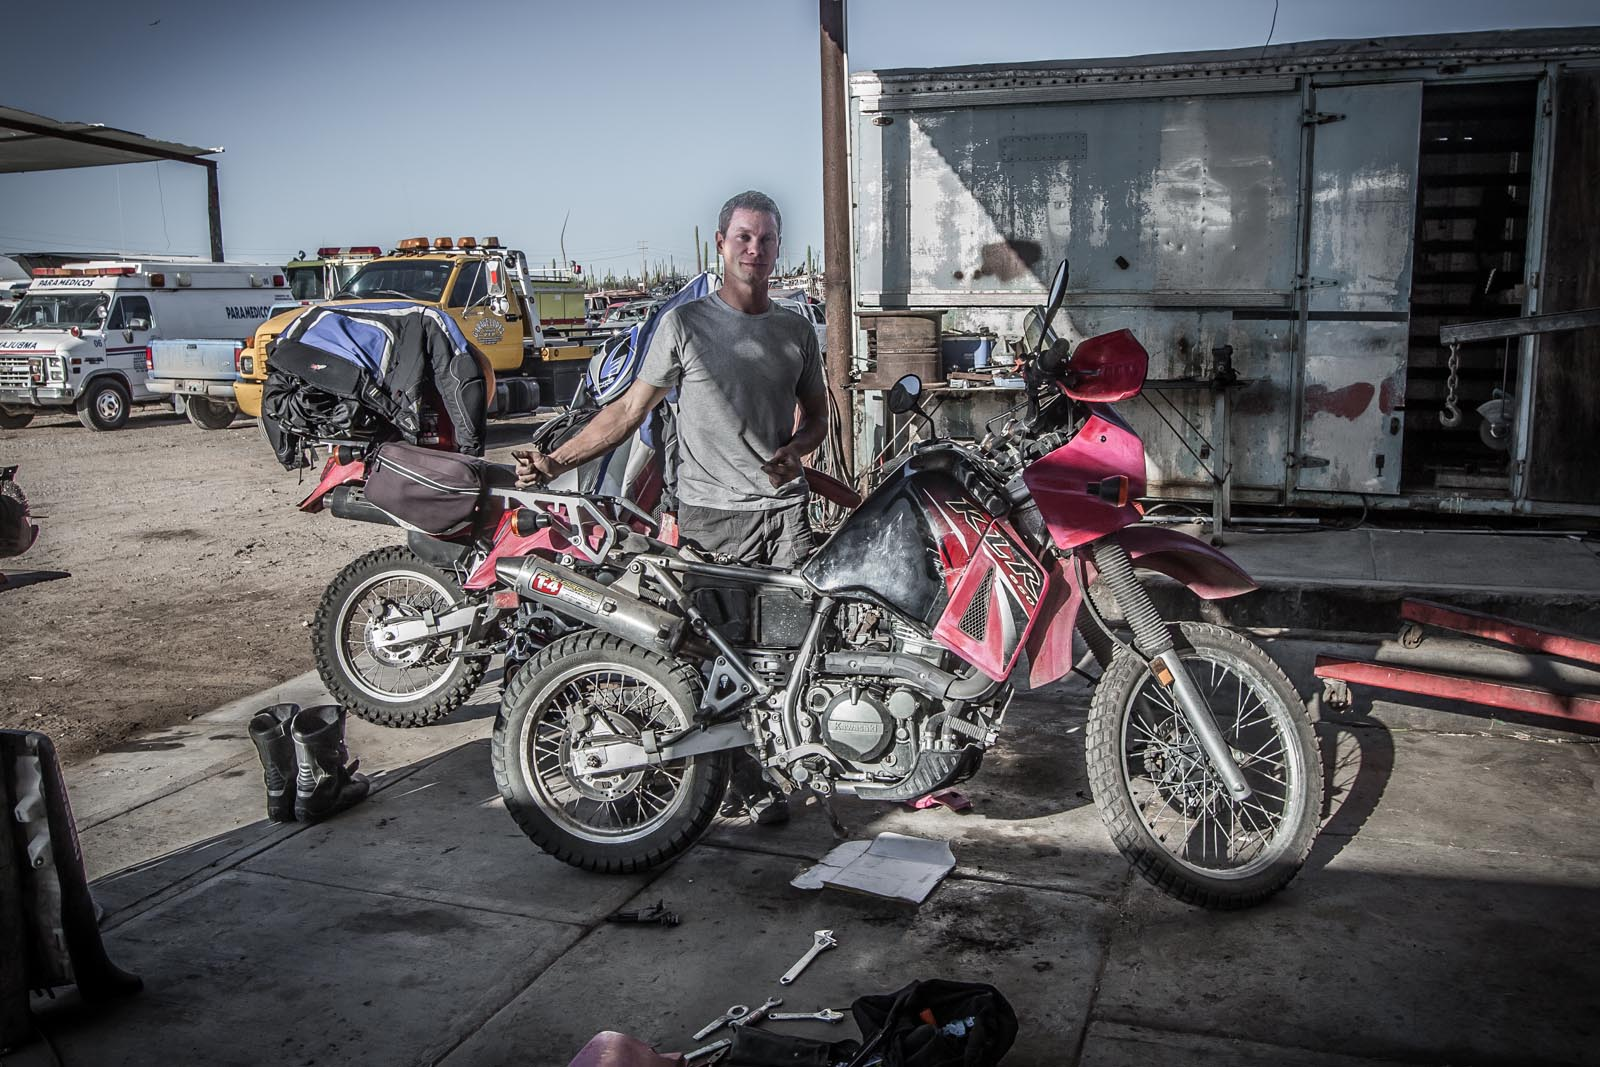 Poor little Pinky, never had a chance. After leaving the seaside village of Bahia de Los Angeles, she chugged along until she chugged no more. Conveniently, it happened right outside of a towing garage where they let us use some shade to take a closer look at the problem.